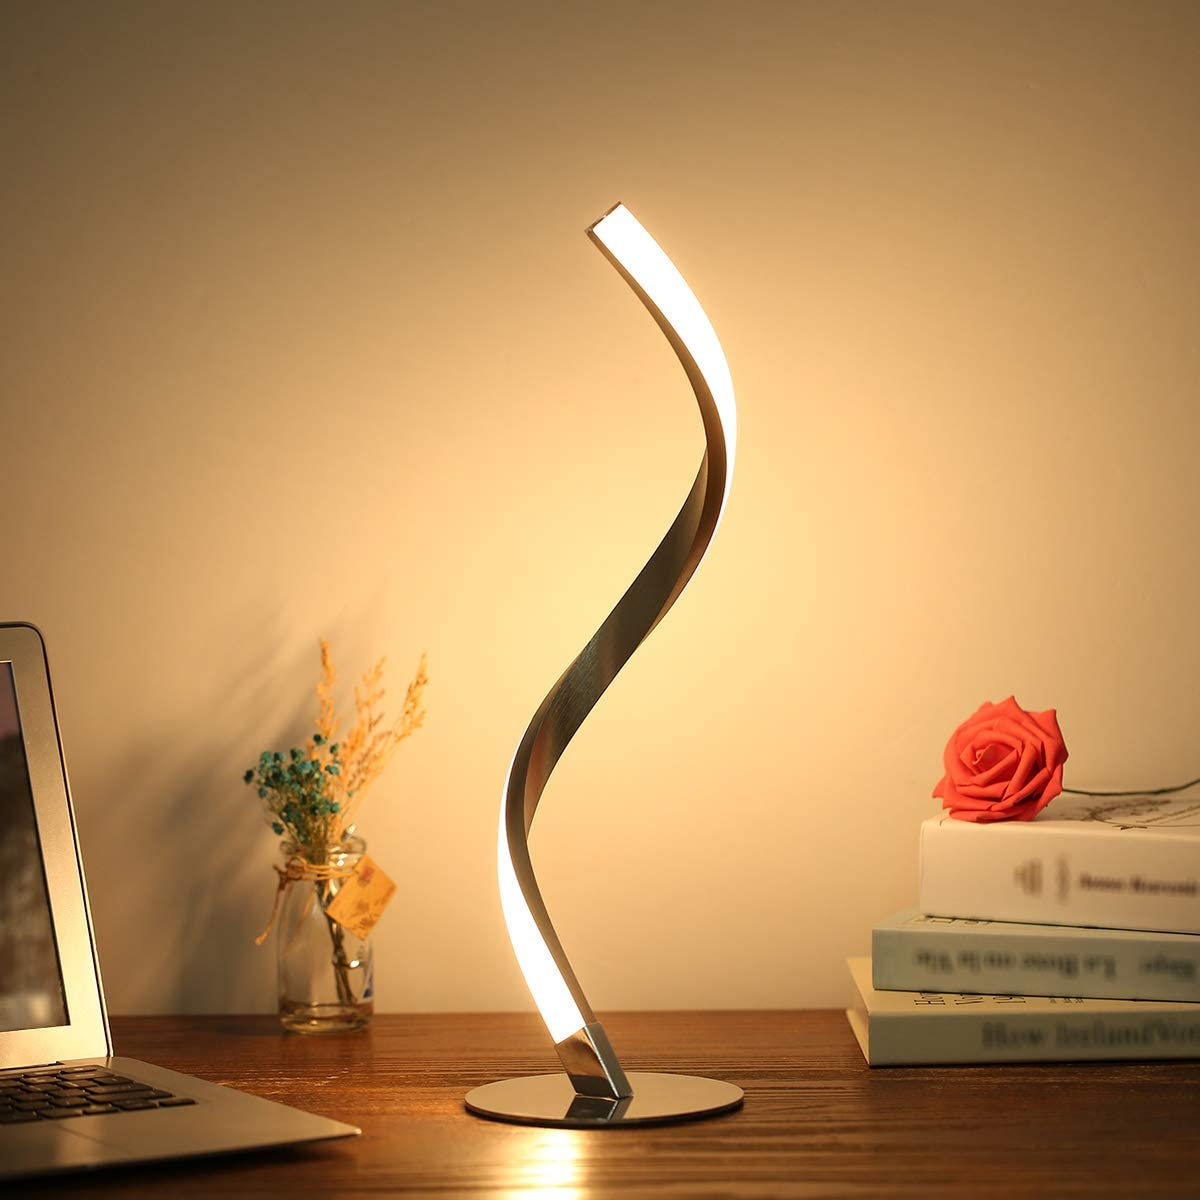 Tomshine Spiral LED Table Lamp 6W 3000k Minimalist Desk Lamp Aluminum Alloy Acrylic Non-dimmable 1.5m Cable Bedside Nightstand Lamps for Bedroom Office Warm White